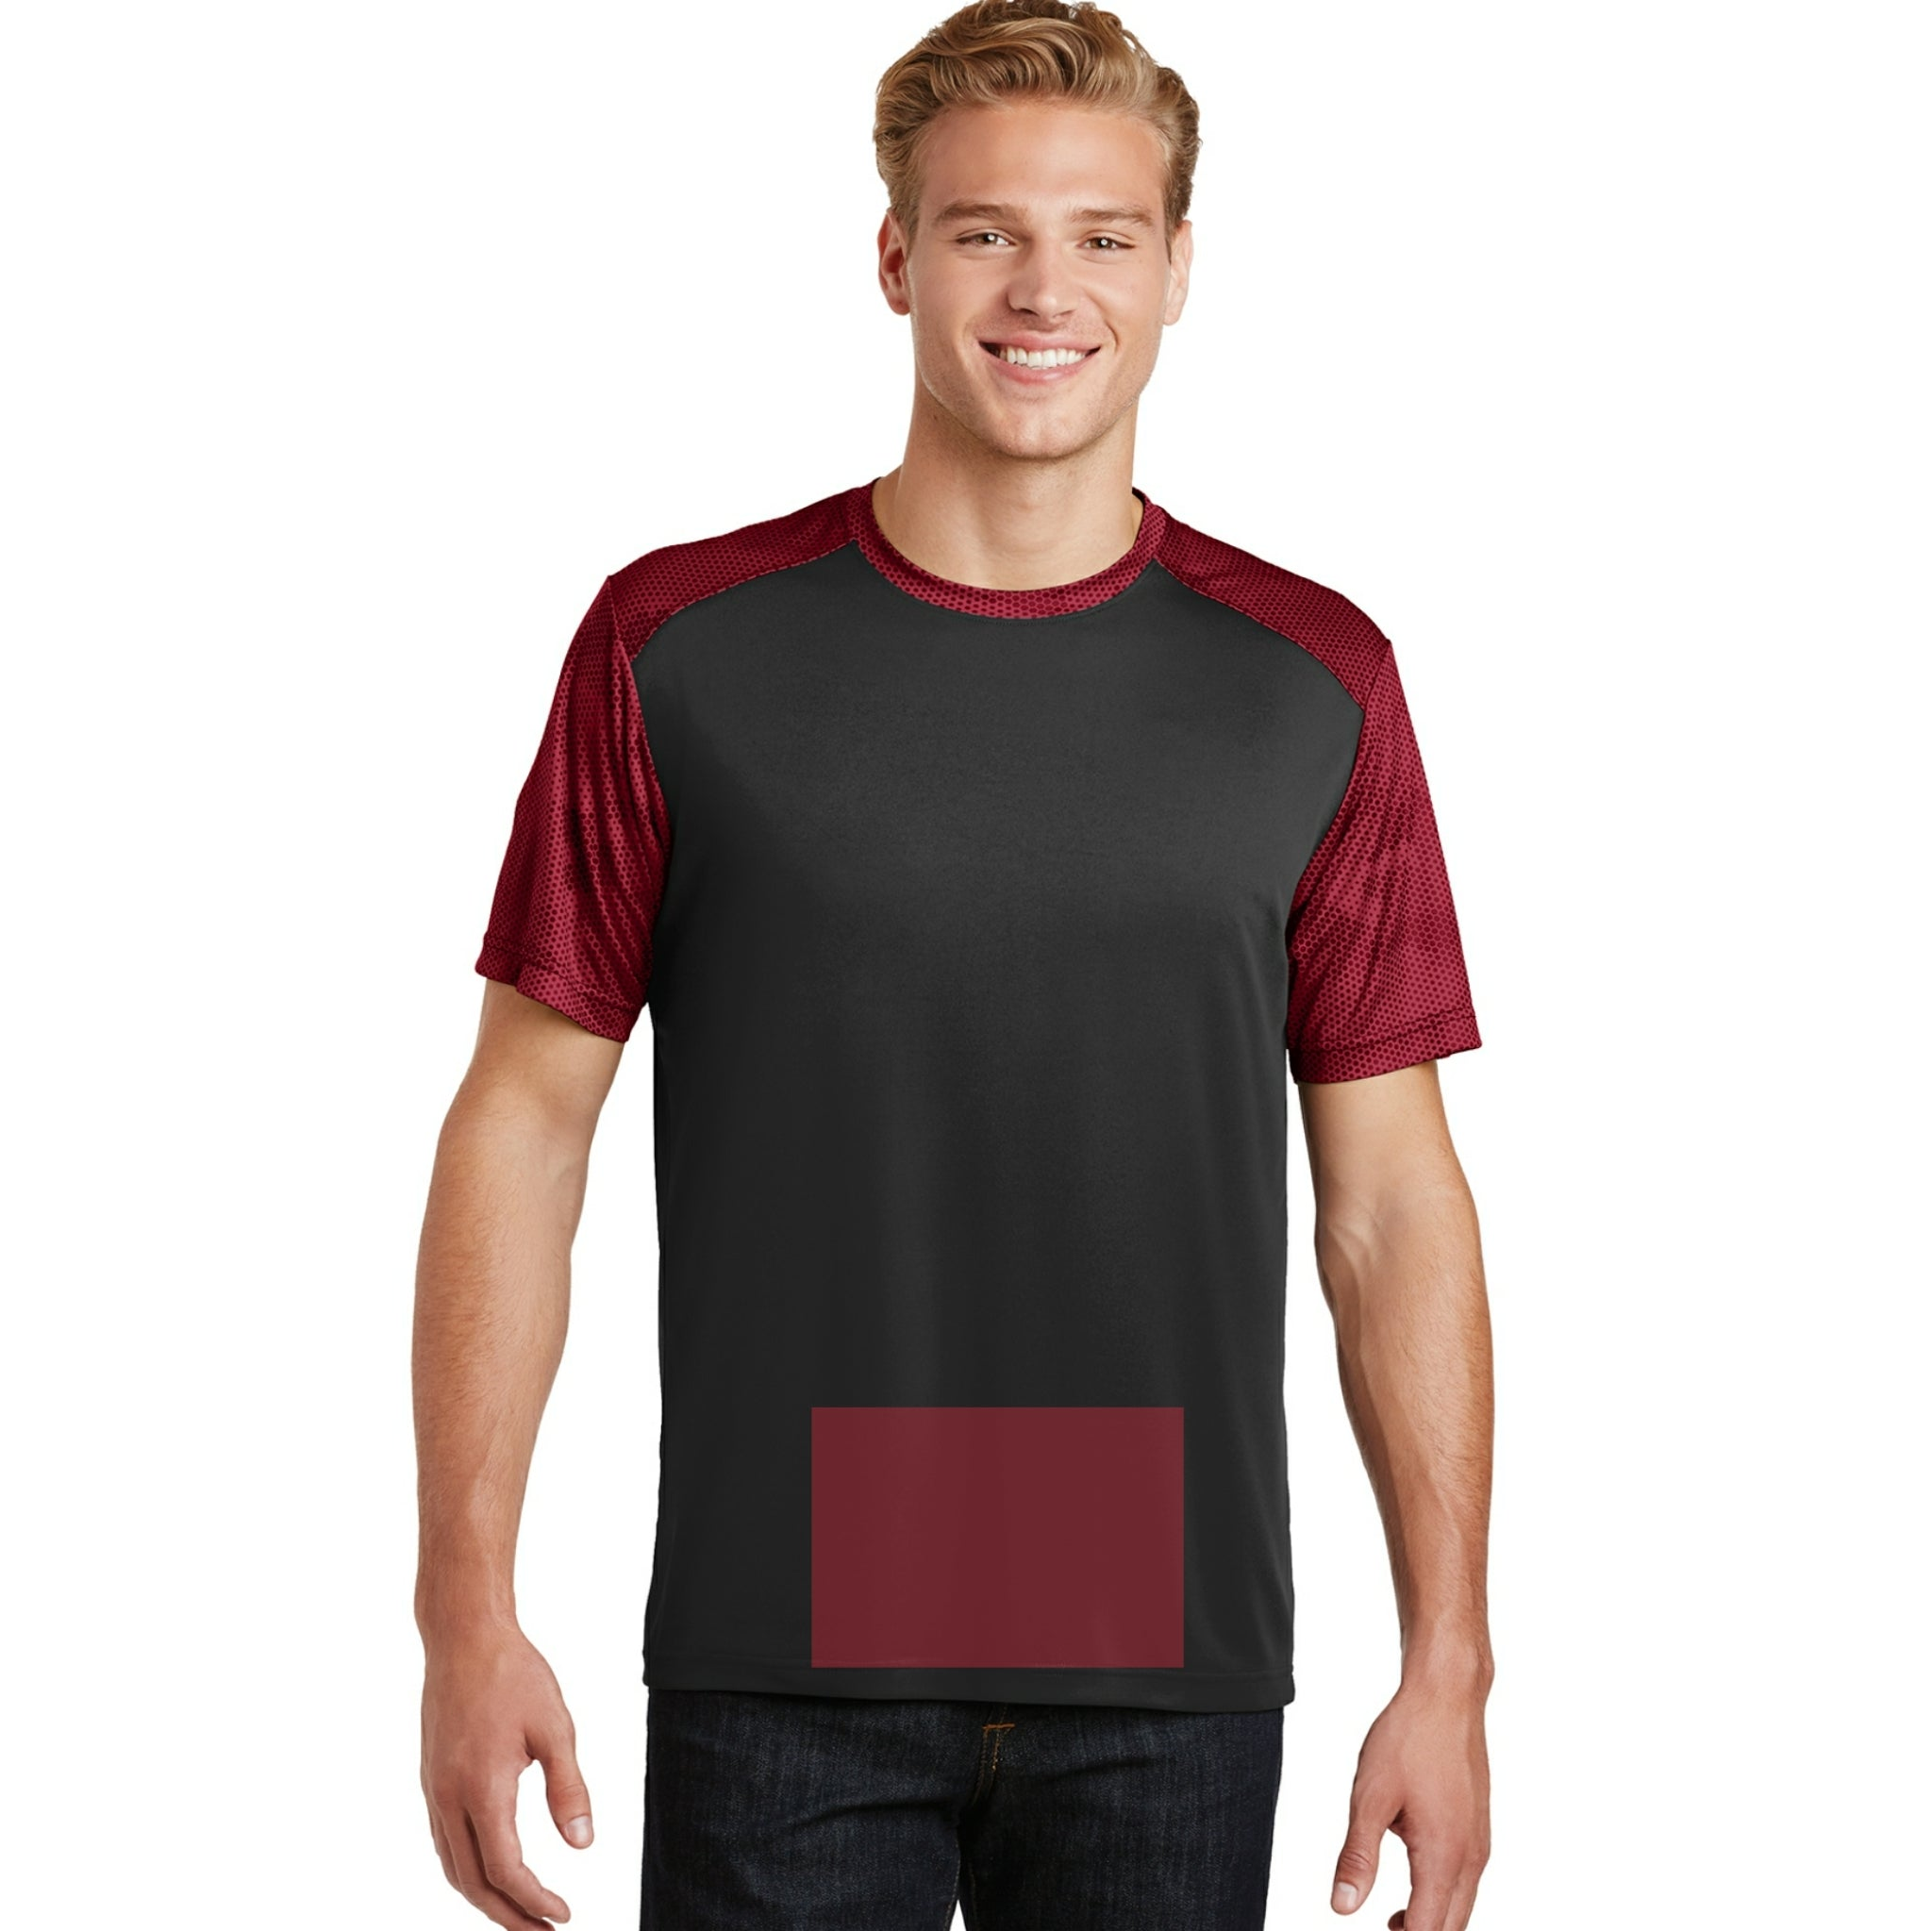 attached front panel camohex colorblock tee Black/Deep Red Camohex